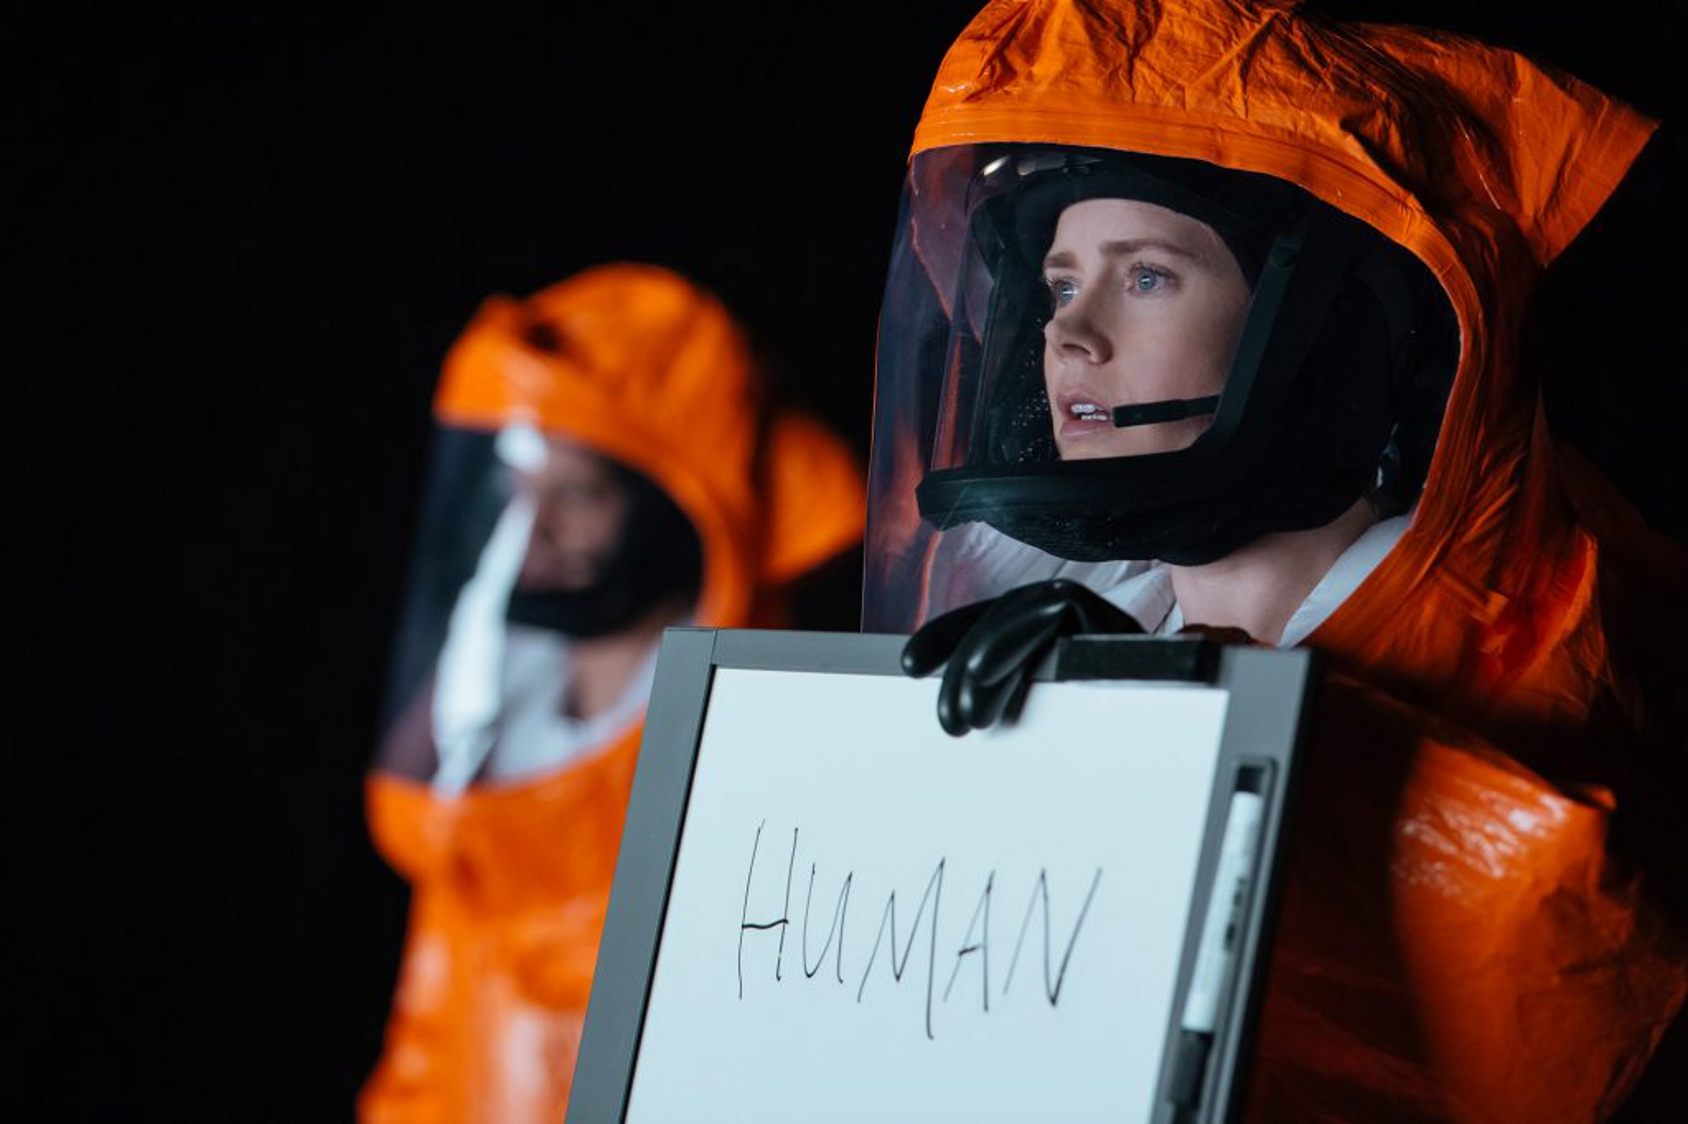 https://cinemaplanet.pt/wp-content/uploads/2016/11/arrival.jpg